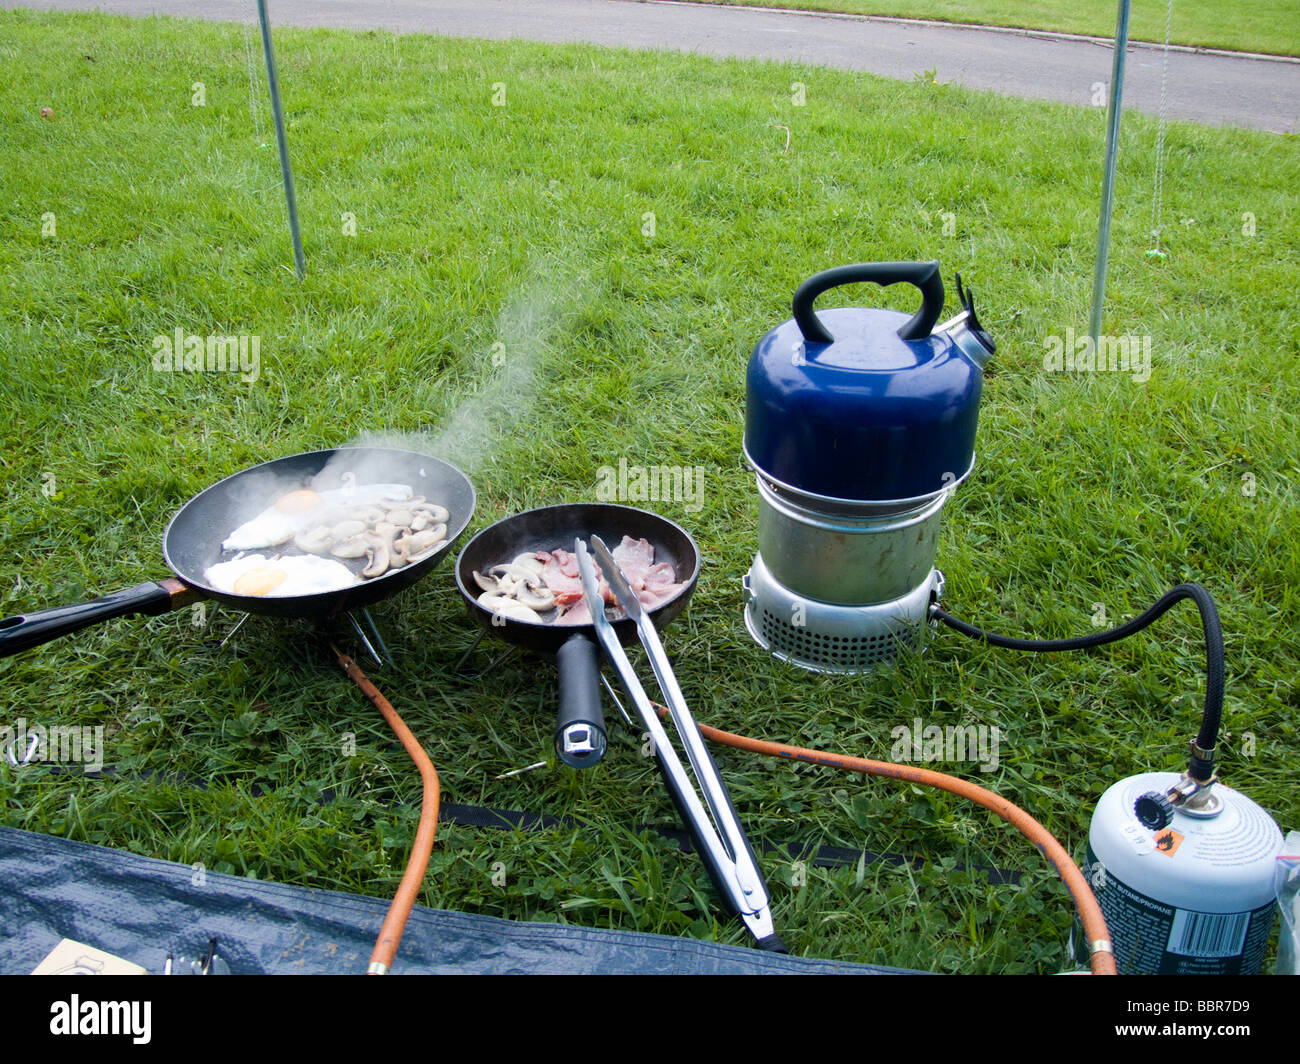 Open air cooking making breakfast while c&ing in a tent & Open air cooking making breakfast while camping in a tent Stock ...